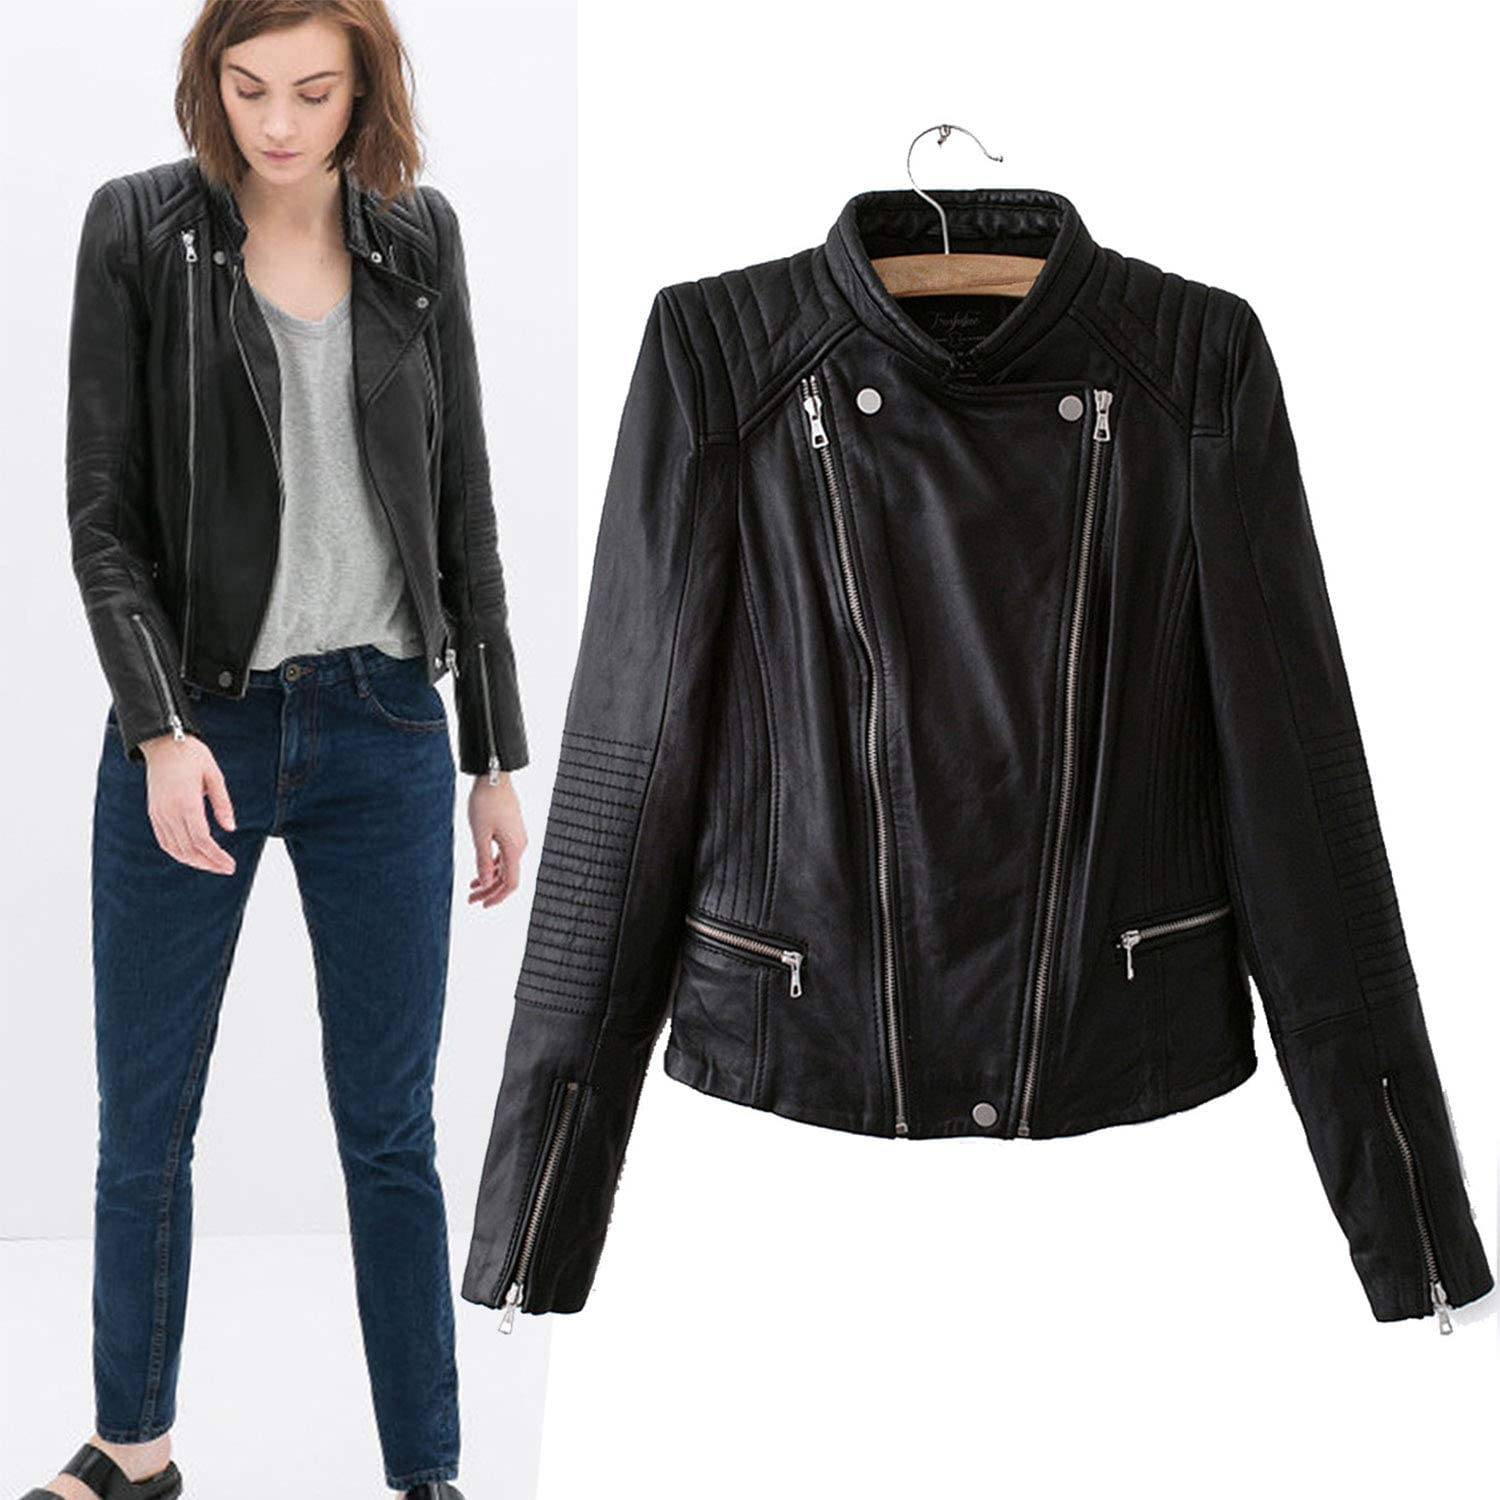 Fashion College Style DoubleZip Leather Jacket,Round Collar MultiZip Biker Jacket Ideal for Ladies Girls Casual Outwear,Black